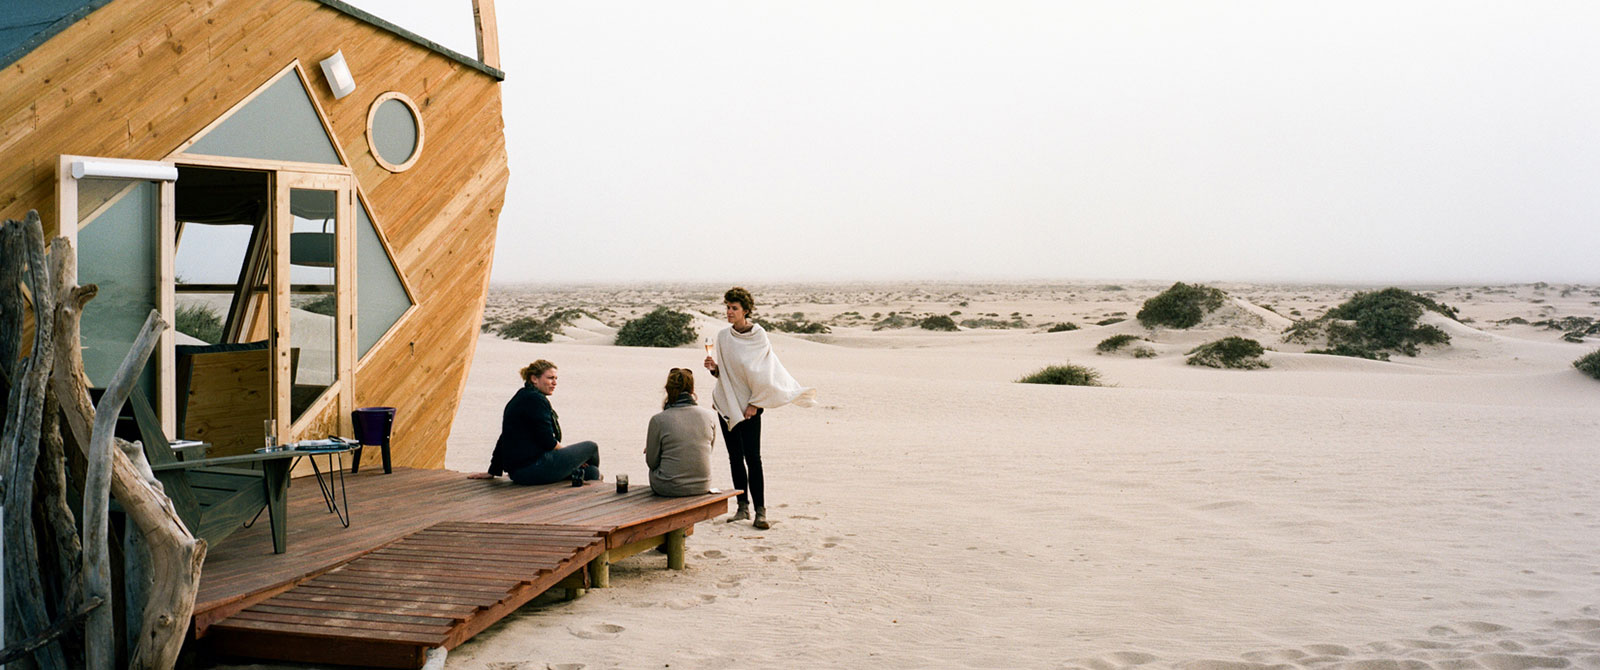 Sundowners at Shipwreck Lodge on the Skeleton Coast, Namibia